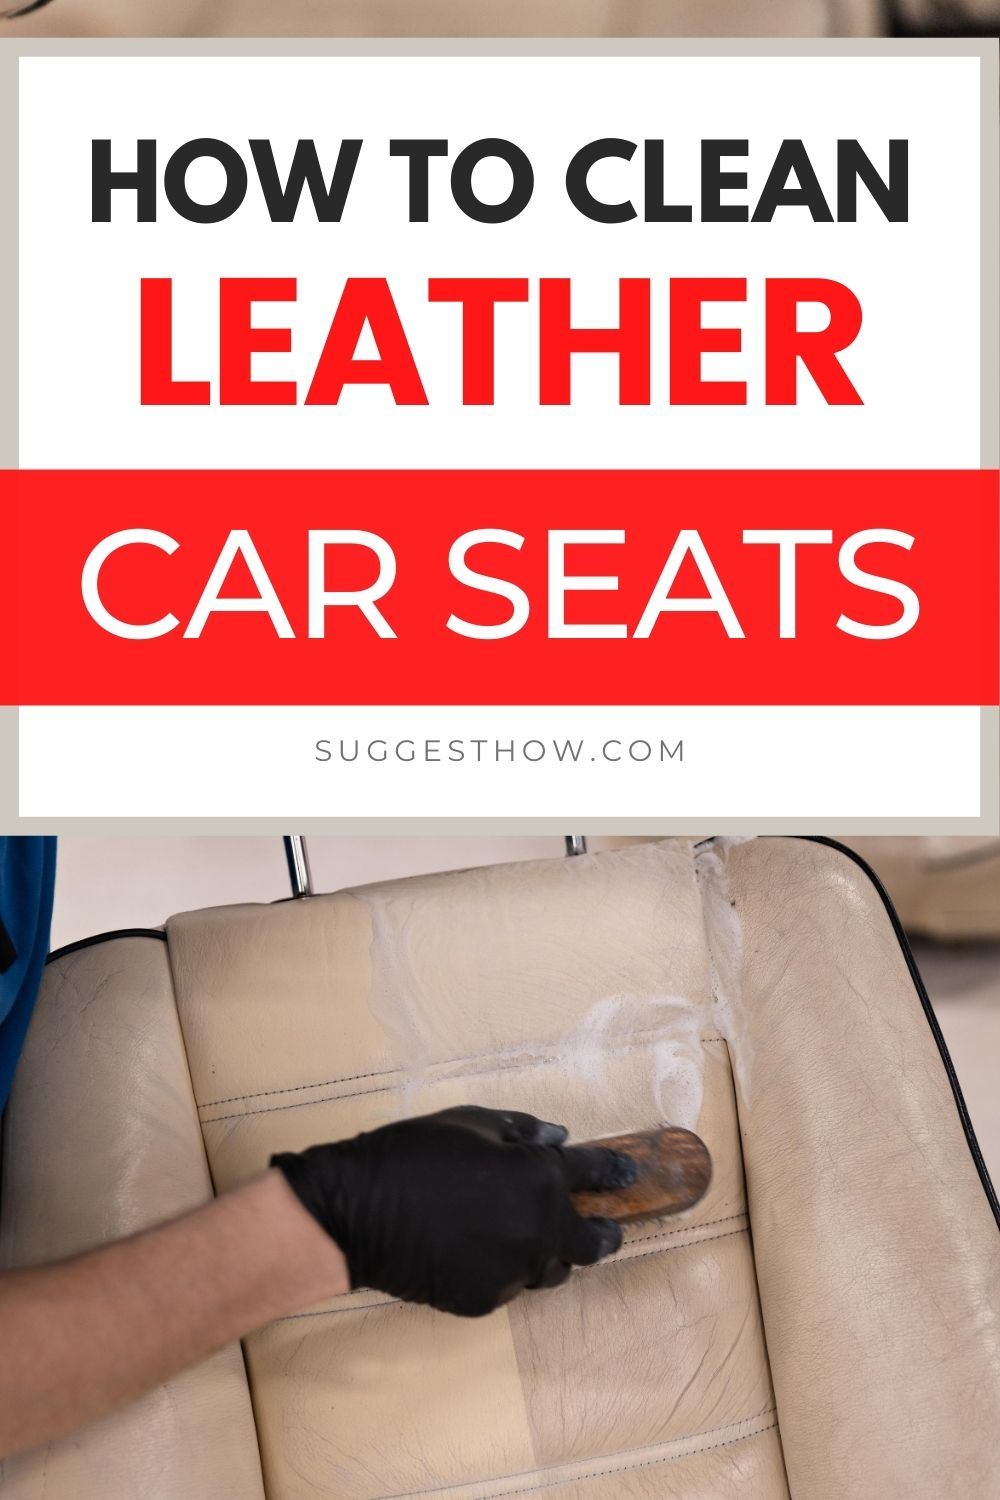 How to Clean Leather Car Seats in 5 Simple Steps in 2020